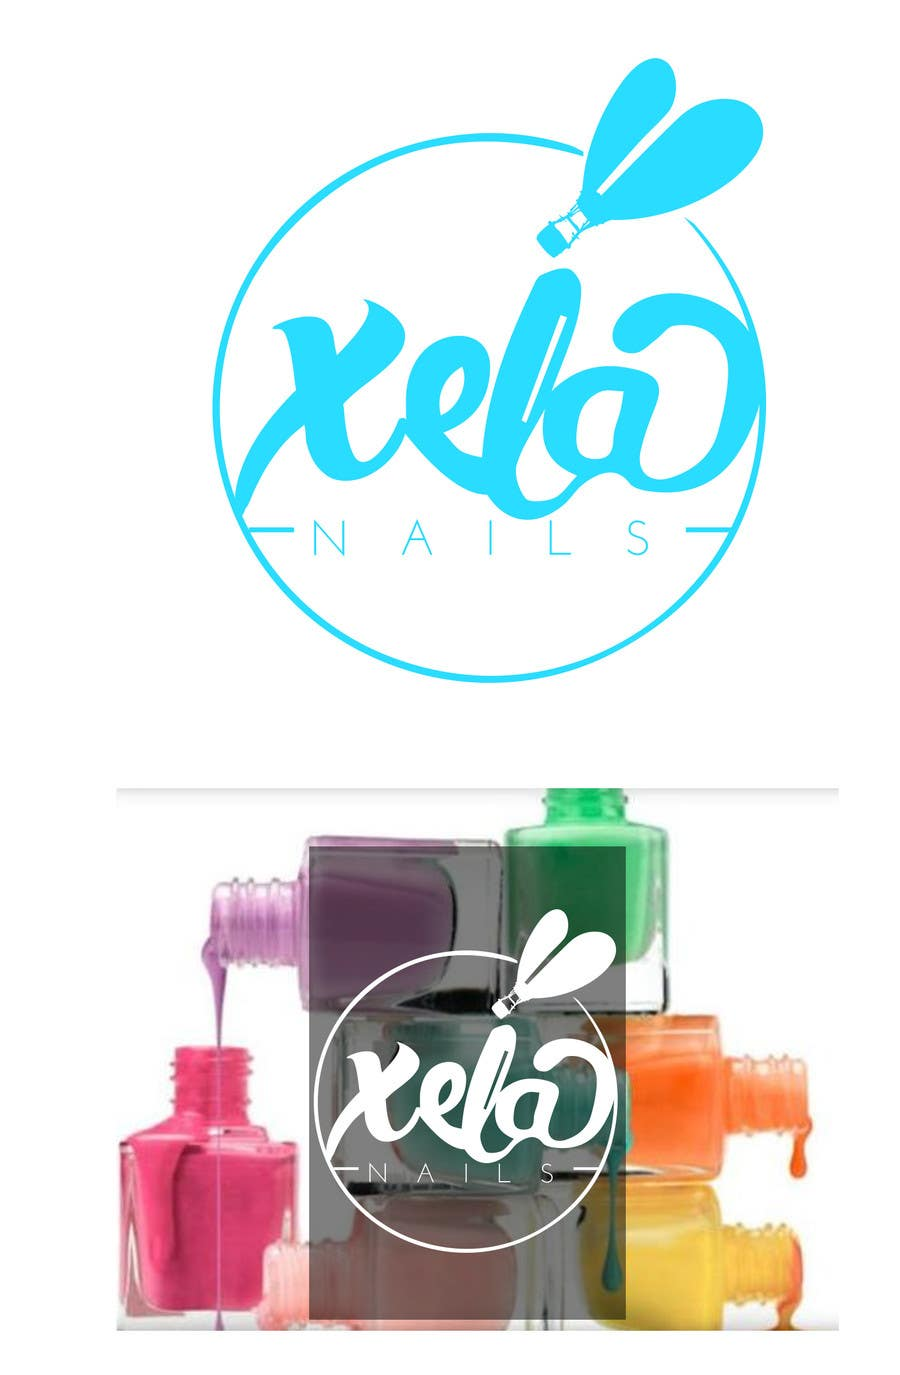 Konkurrenceindlæg #                                        33                                      for                                         Design a Logo for xela nails